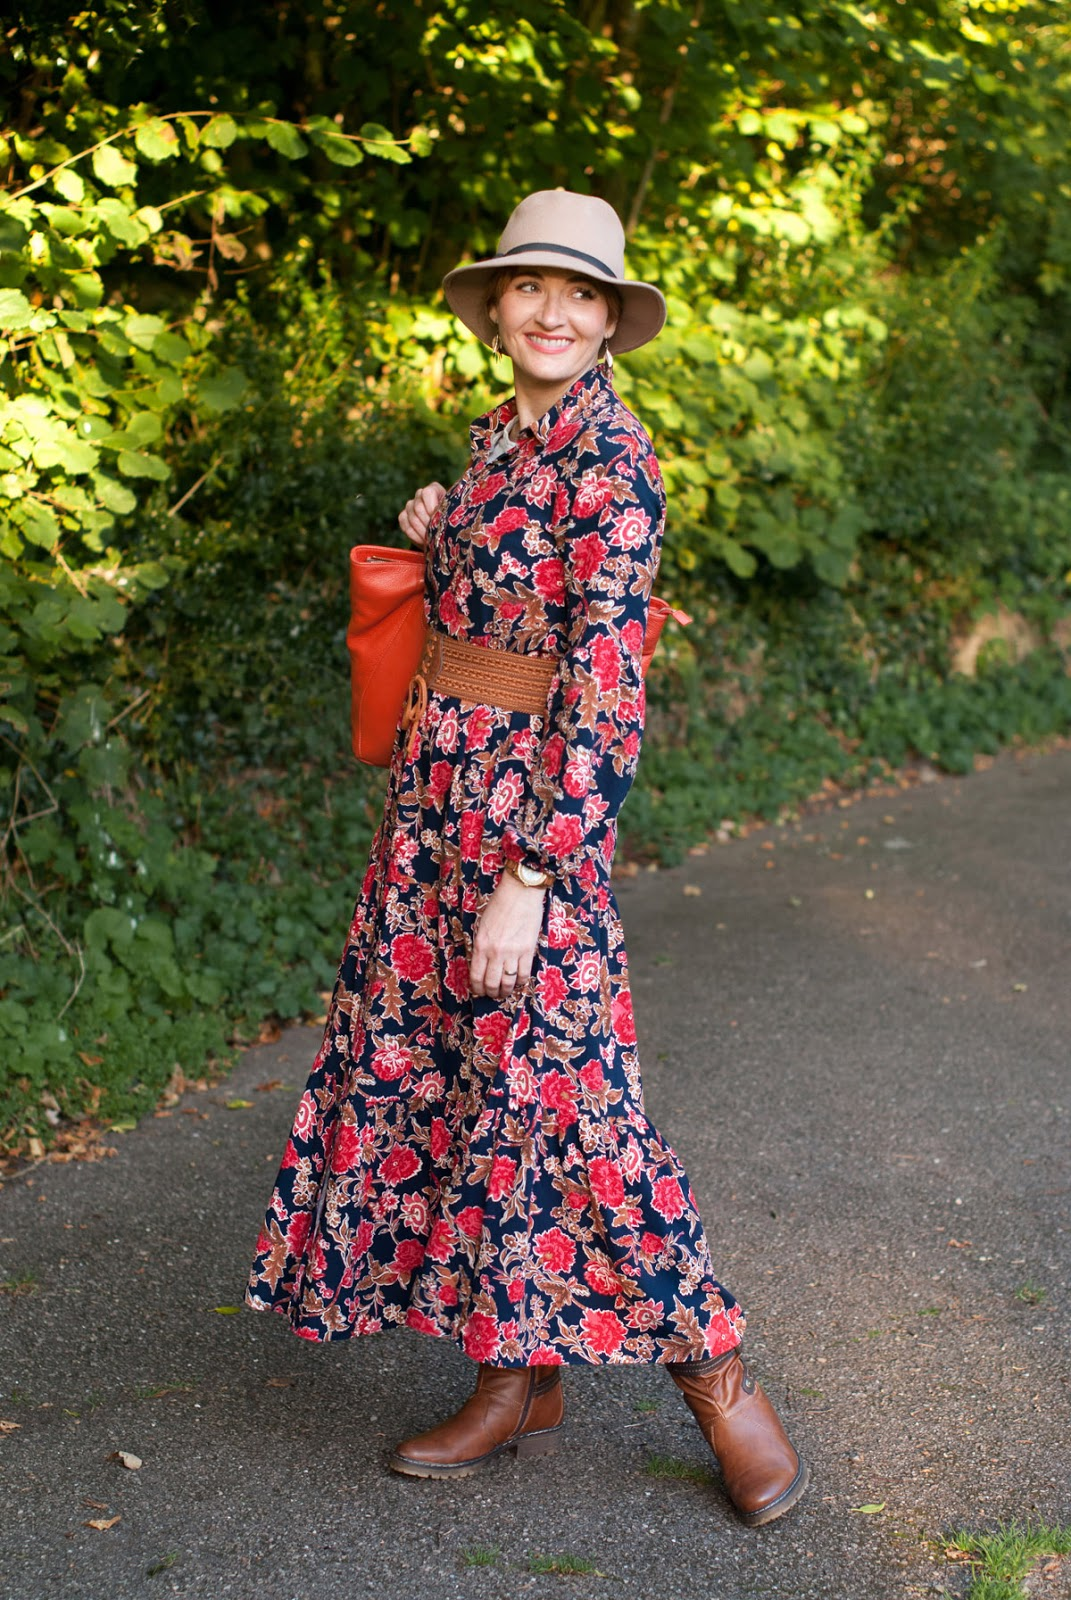 Romantic, Ralph Lauren-inspired 70s style autumn/fall outfit: Floral maxi dress tan belt and boots camel fedora orange leather tote bag | Not Dressed As Lamb, over 40 style